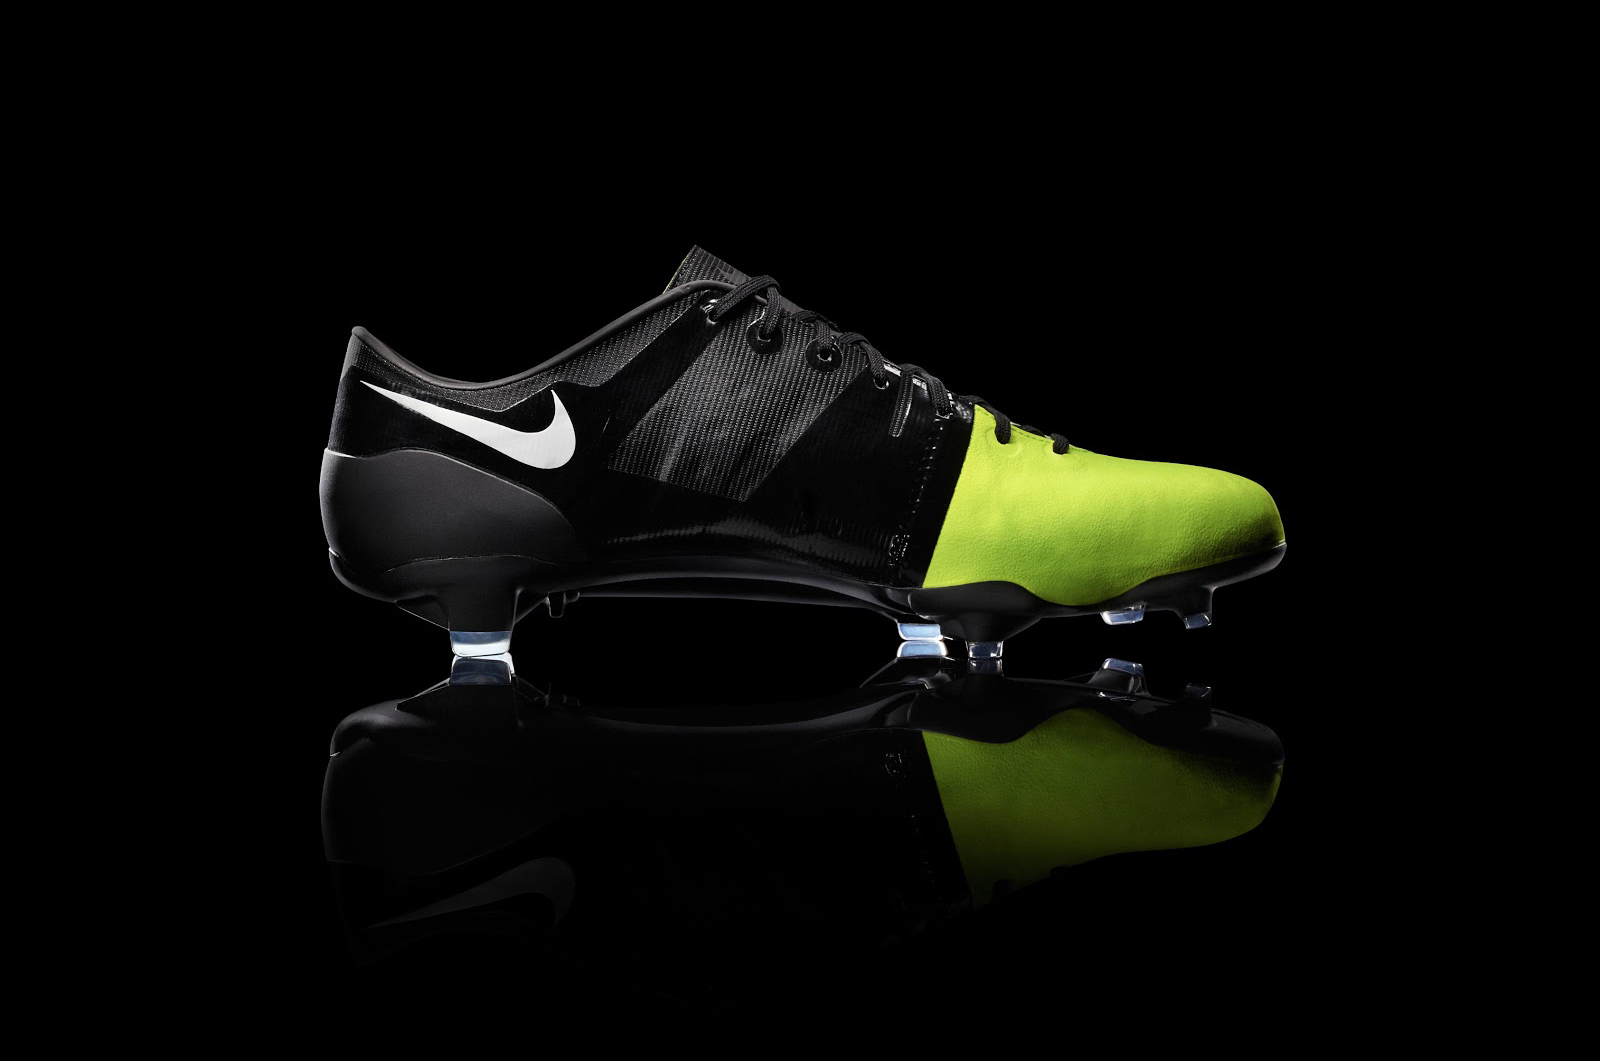 remake-boots-leaked-nike-gs-2012-football-boots-closer-look (5)